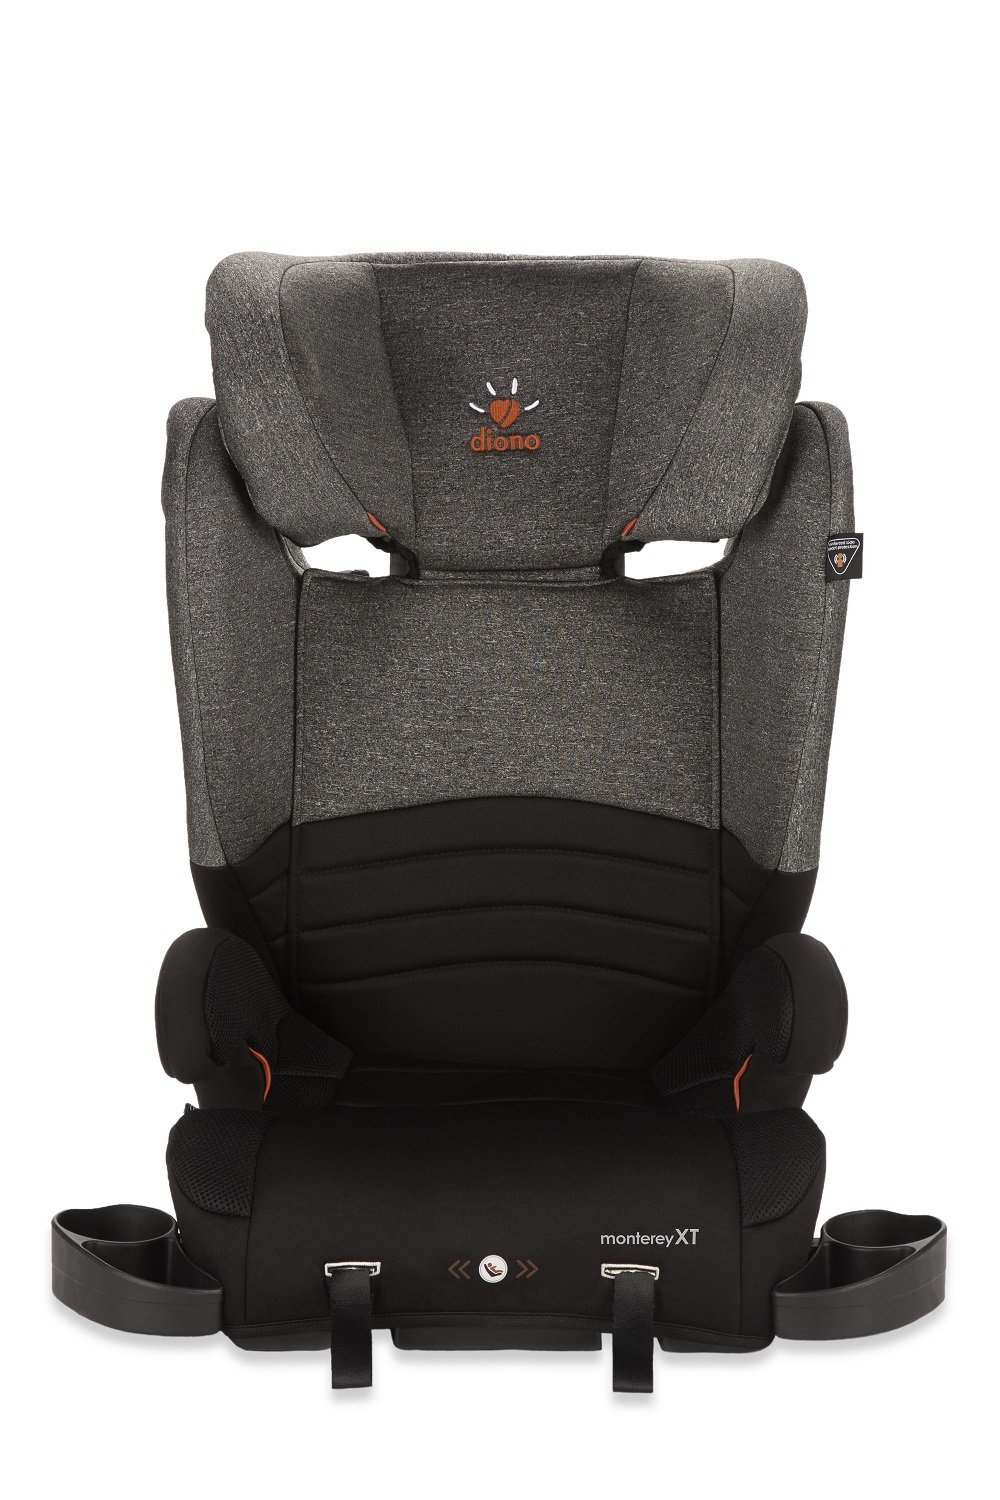 Diono Monterey XT Booster 2-in-1 Car Seat, For Children from 40